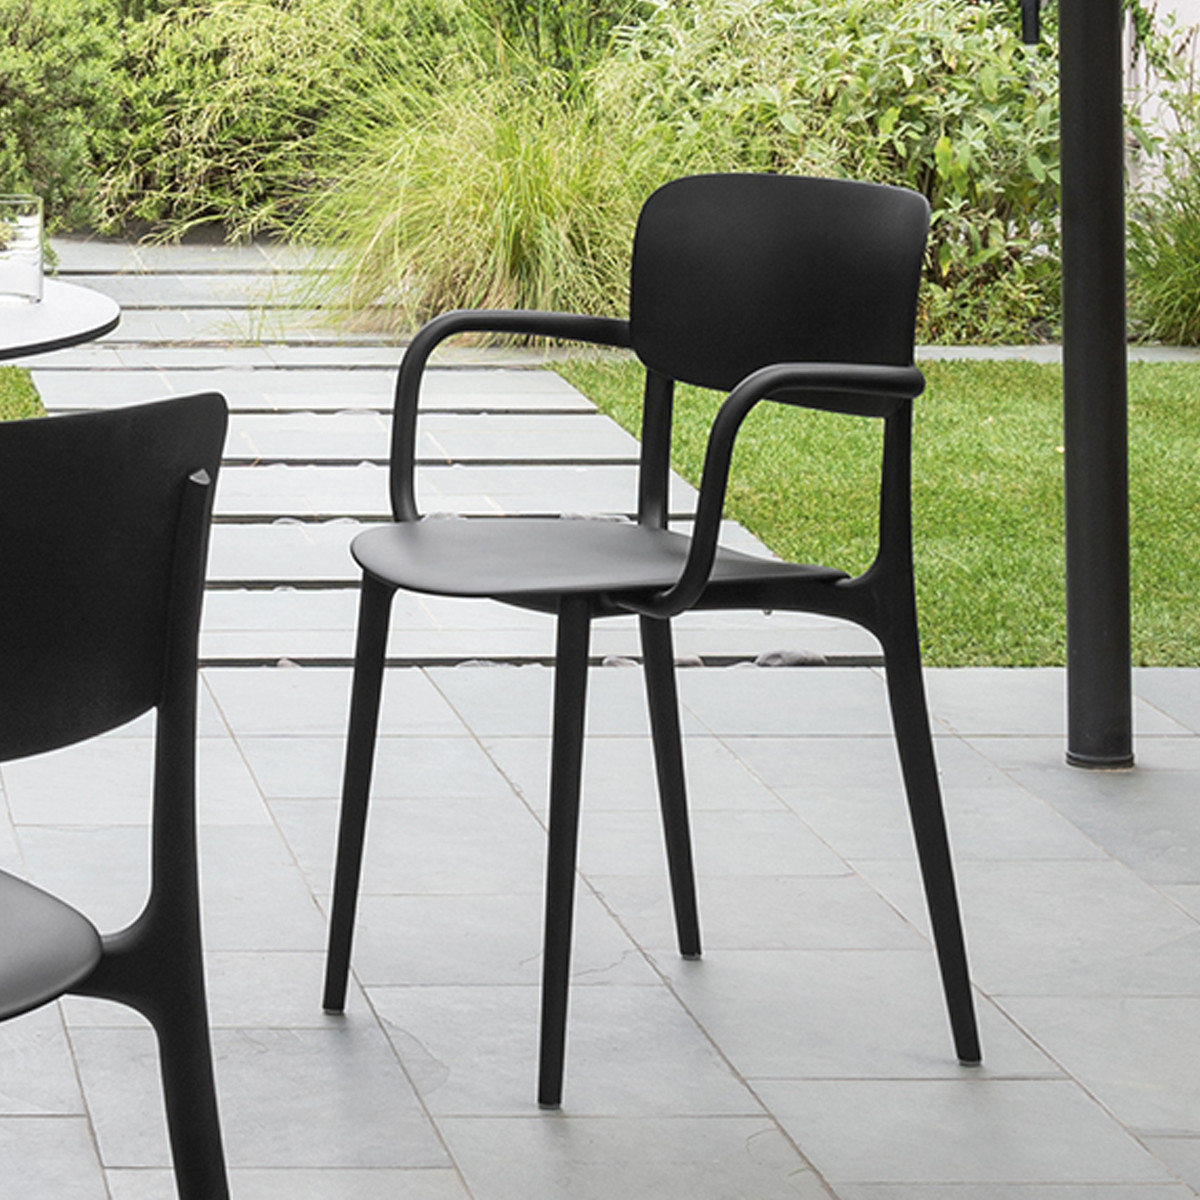 Calligaris Stuhl Calligaris Liberty Armlehnstuhl, In/outdoor | Casa.de